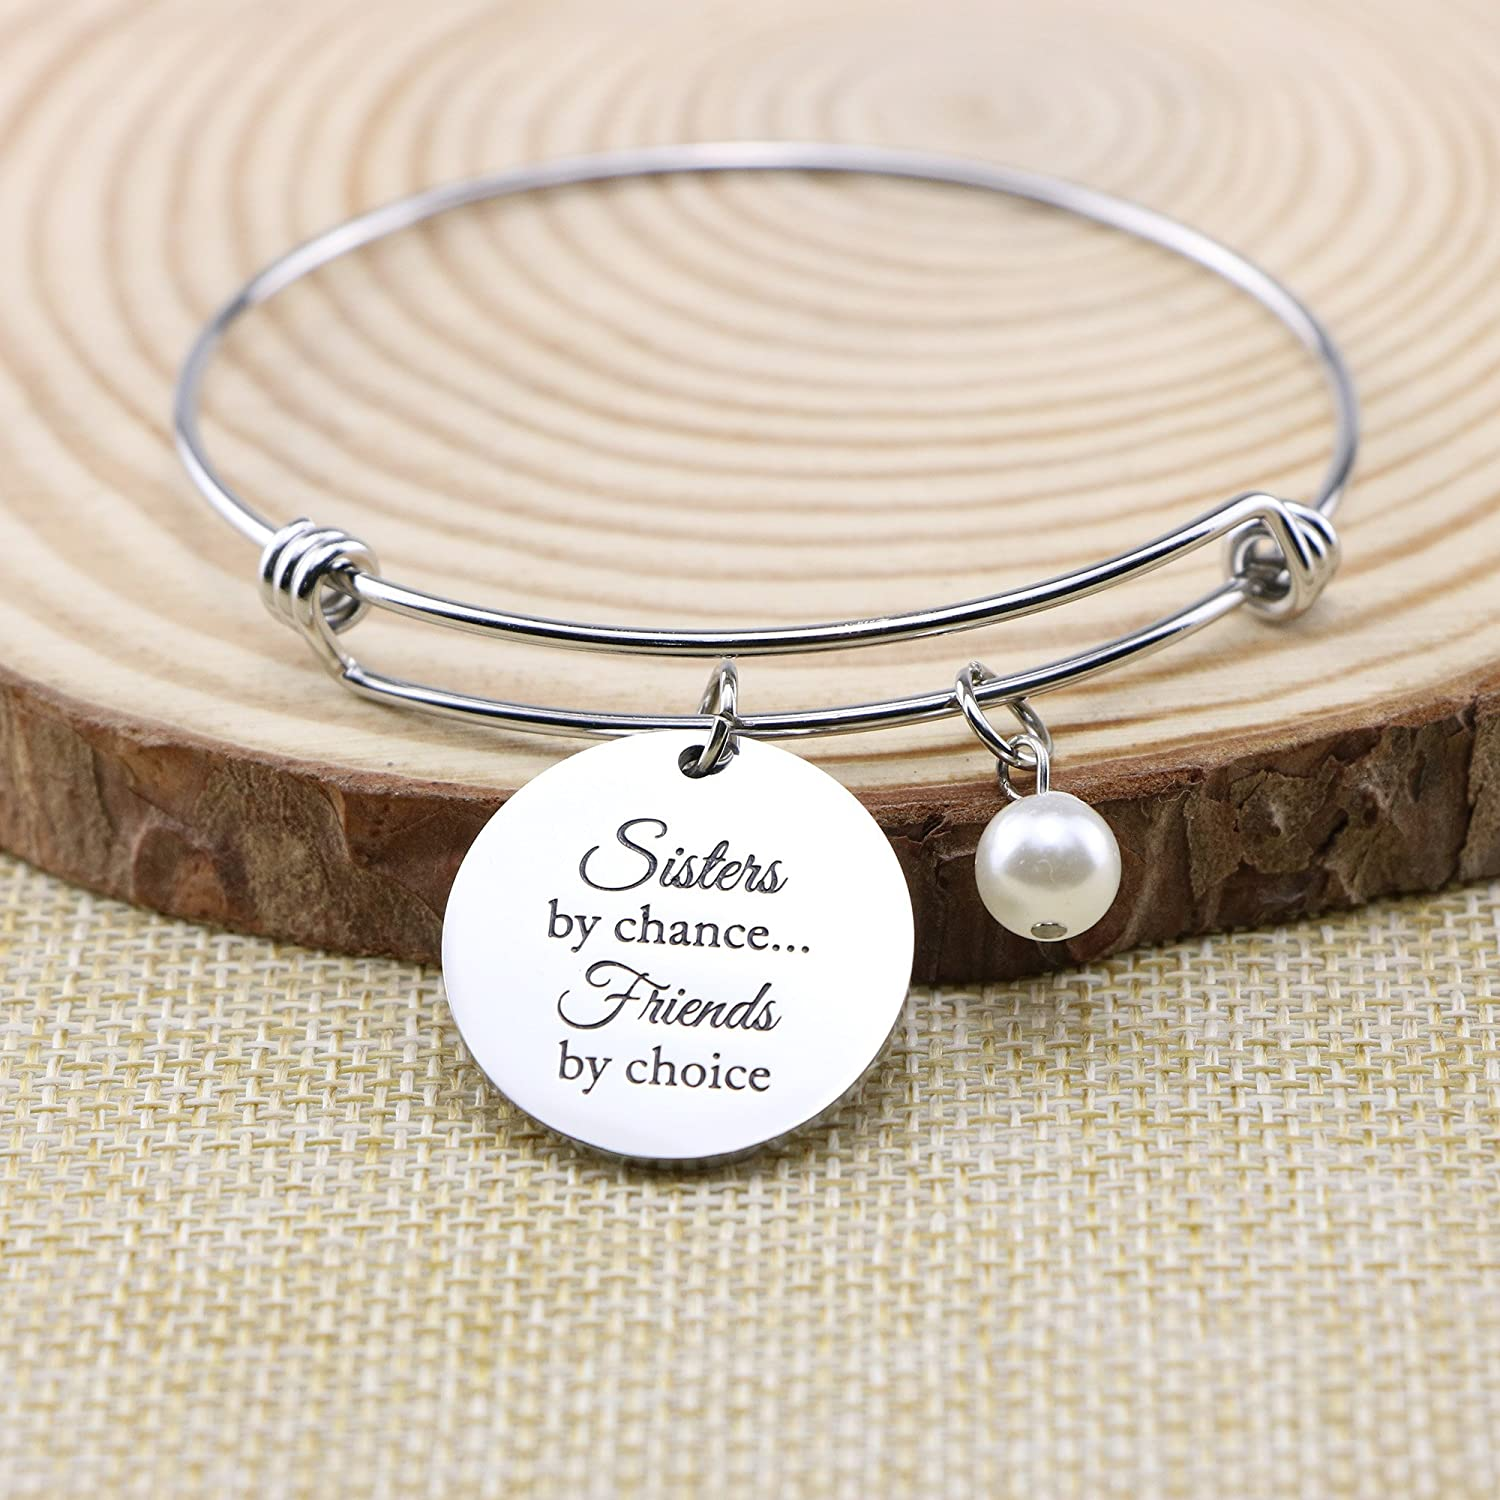 Yiyang Sister Bracelet Cuff Engraved Personalized Friendship Gifts for Her